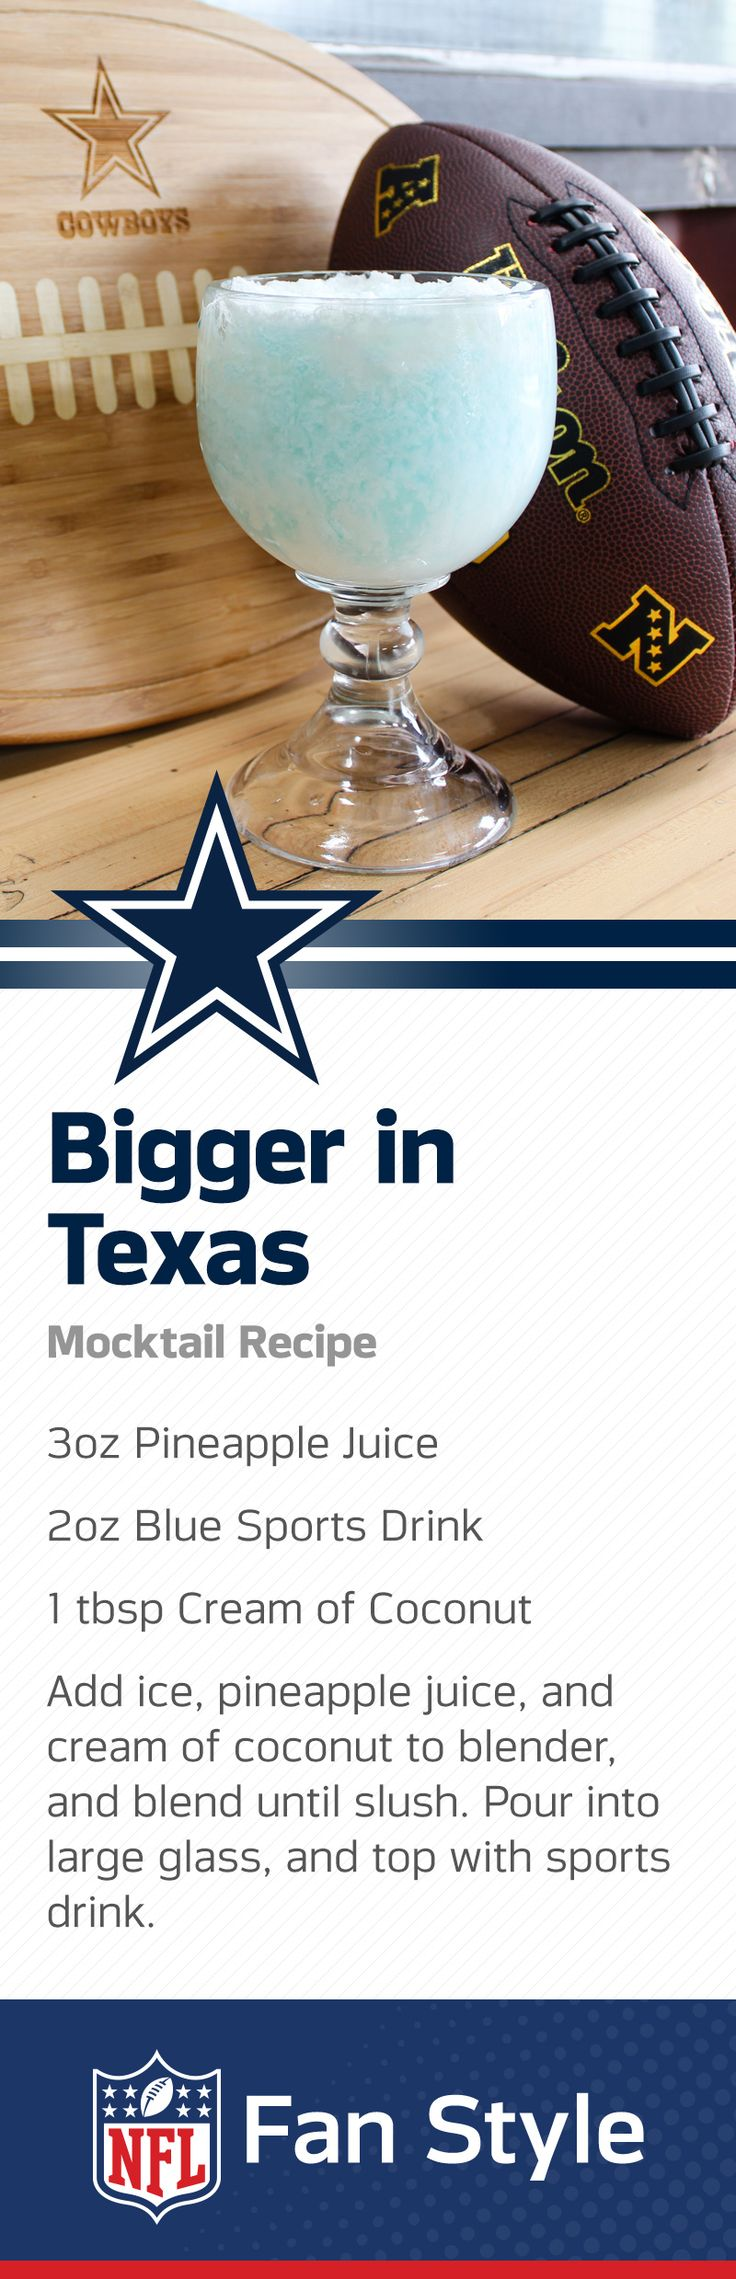 Everything is bigger in Texas, including this gigantic blue slushie. A perfect combo for a hot Dallas afternoon at the stadium or on the porch, mix up a tall order of these pineapple delicacies and win the Homegate.